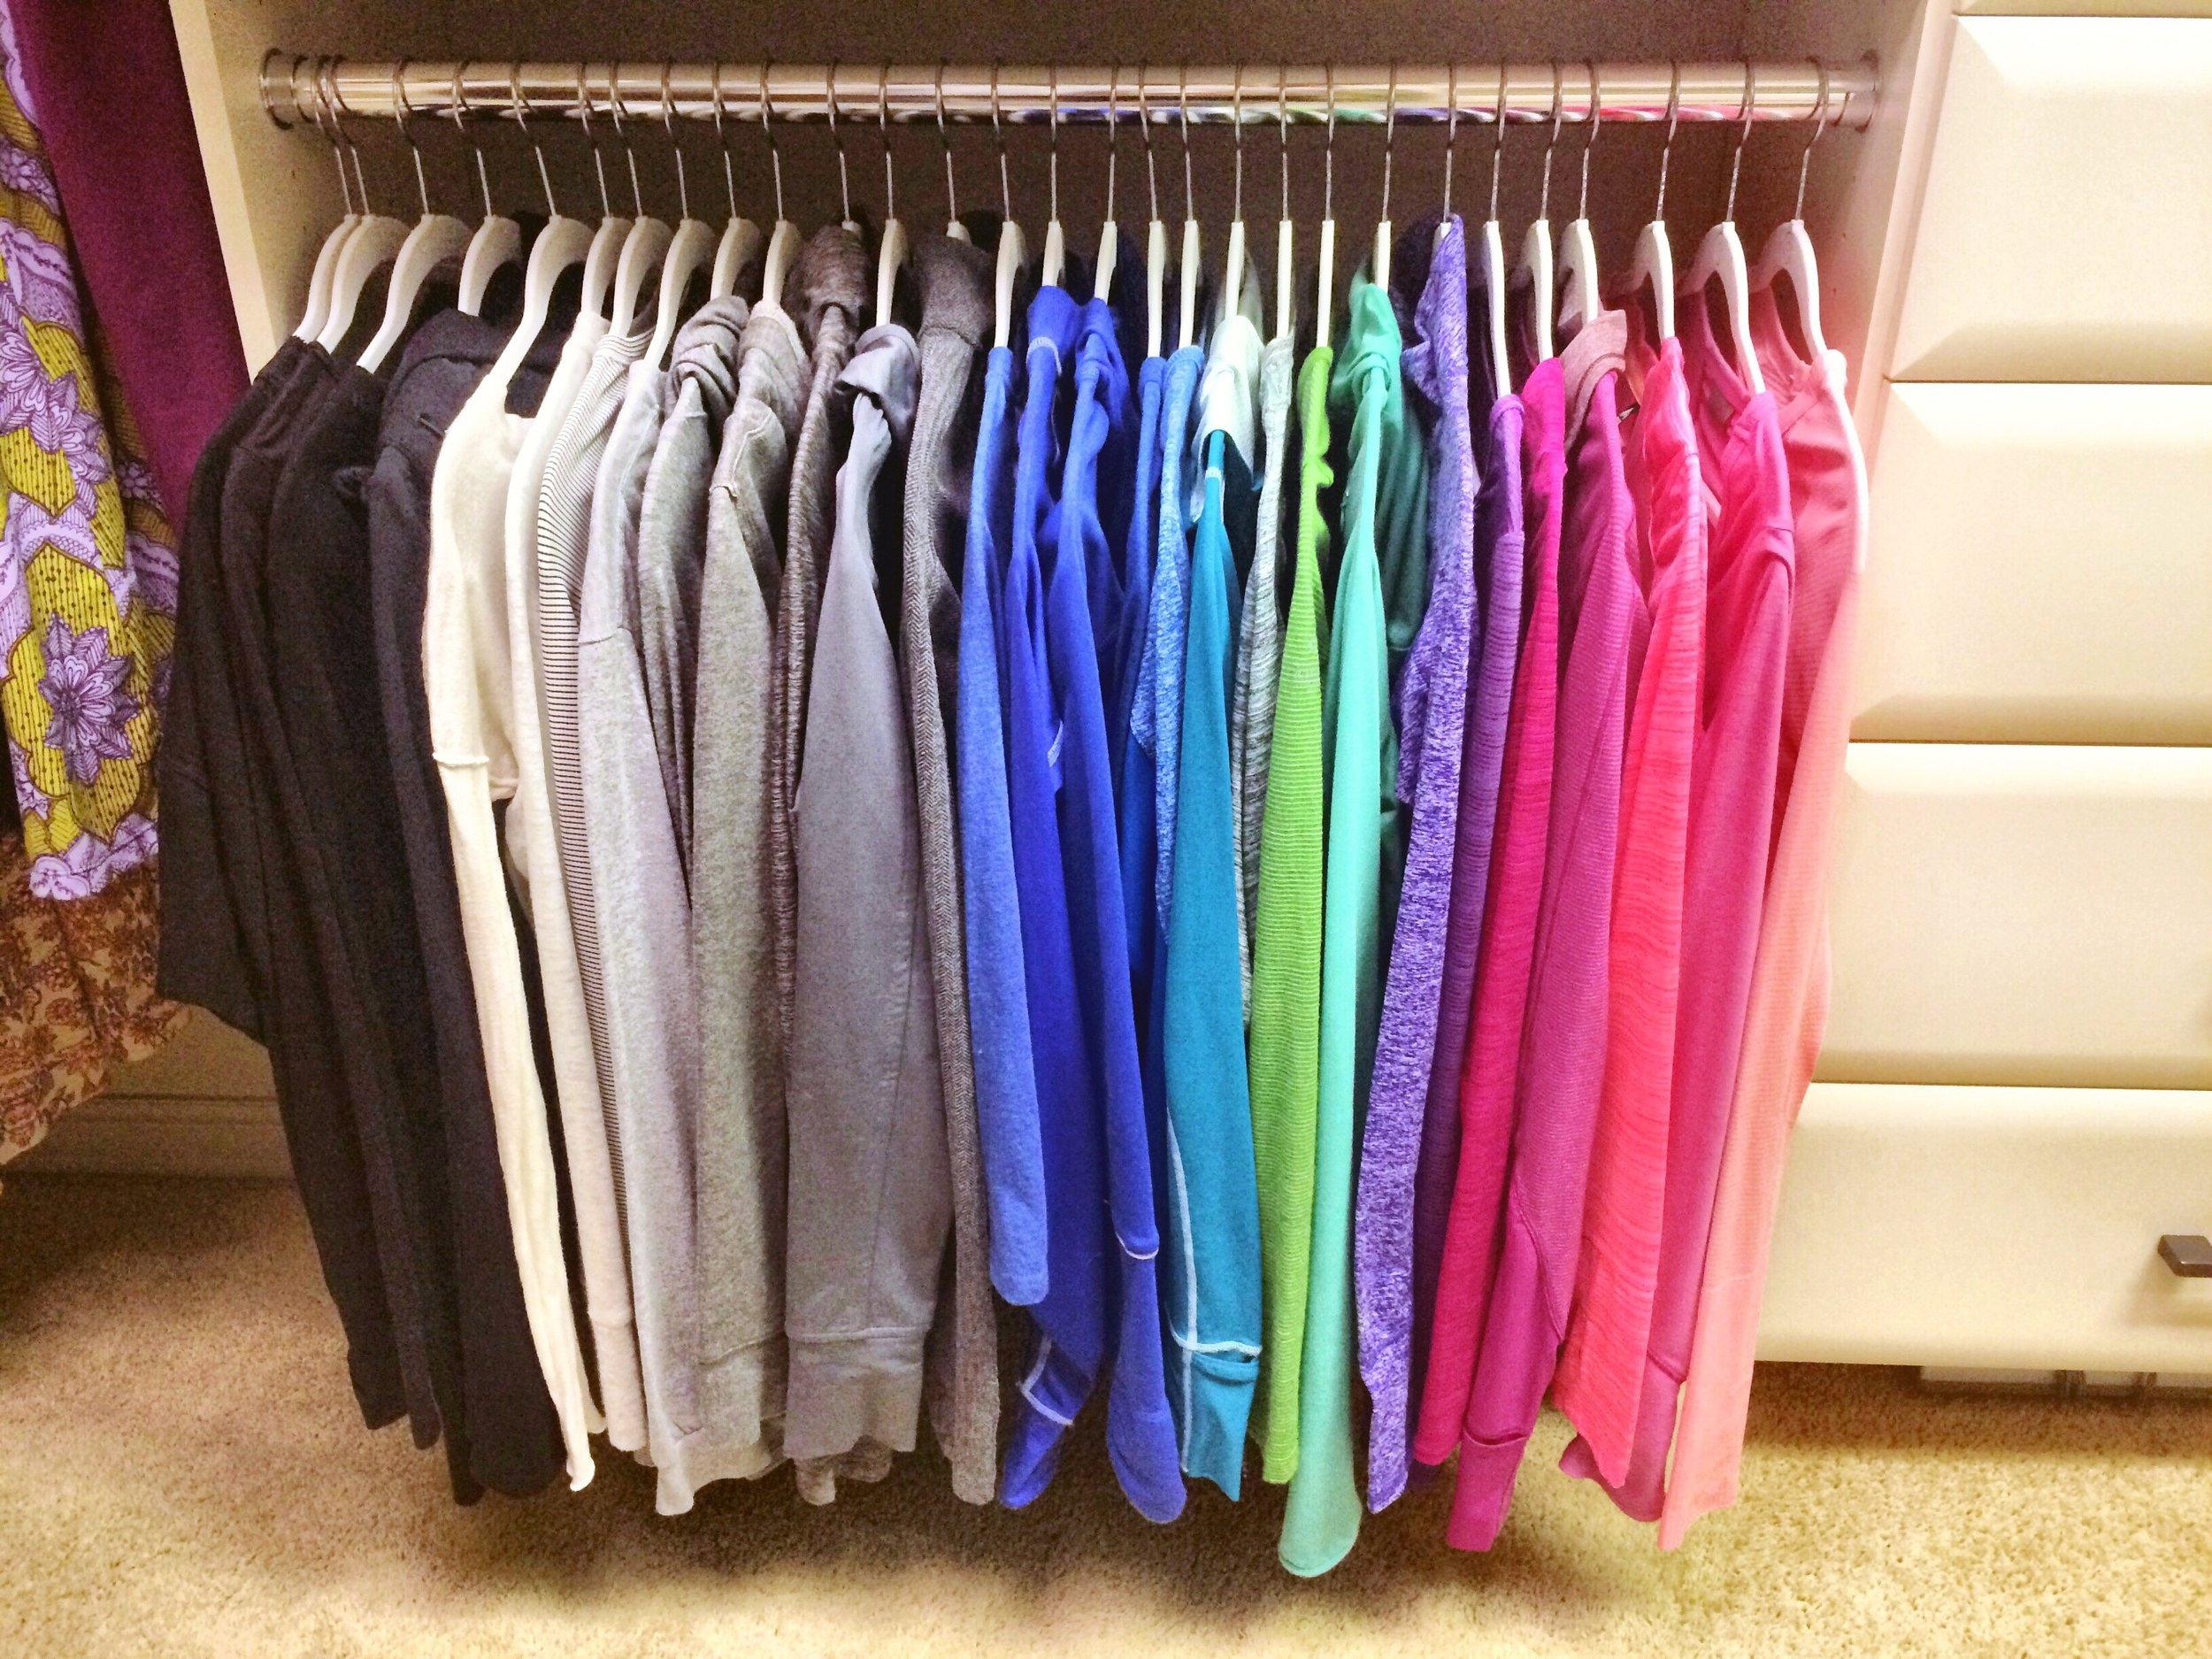 White felt hangers keep these athletic tops in place and looking tidy.  Call Closets of Tulsa  now for your FREE consultation and 3-D closet design:  918.609.0214